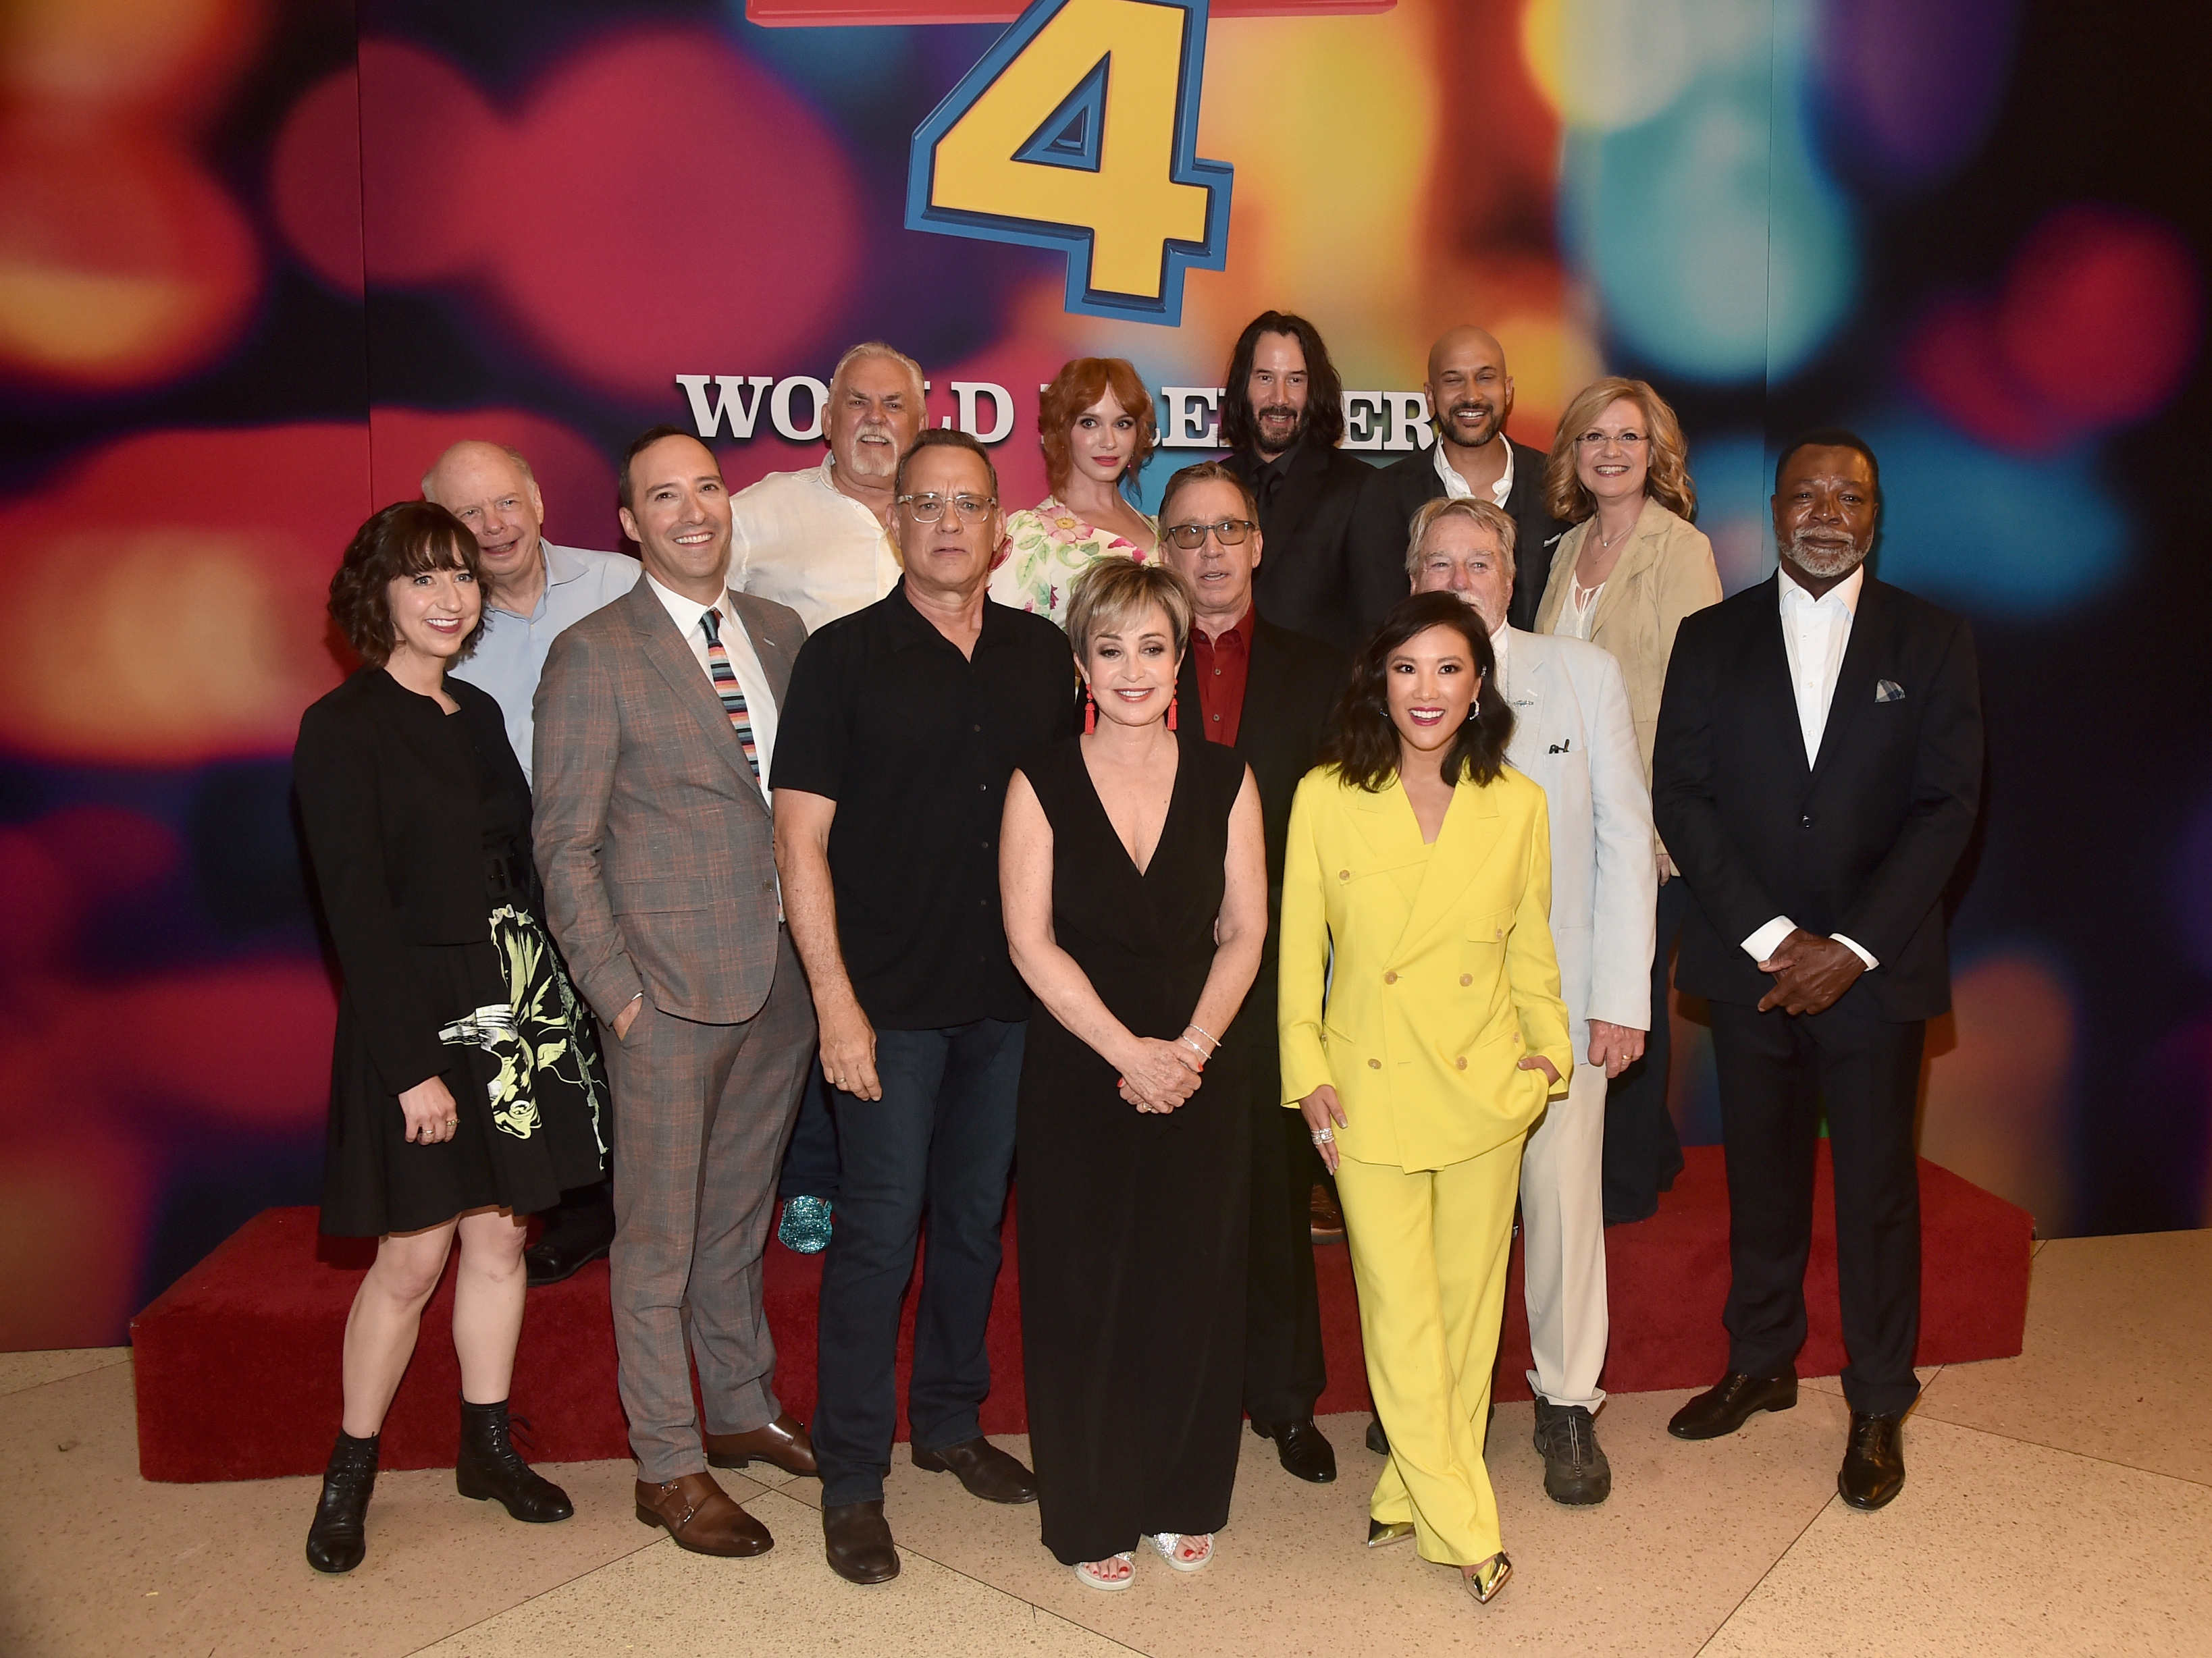 Stars Of Disney And Pixar's Toy Story 4 Celebrate  The World Premiere At Hollywood's El Capitan Theater